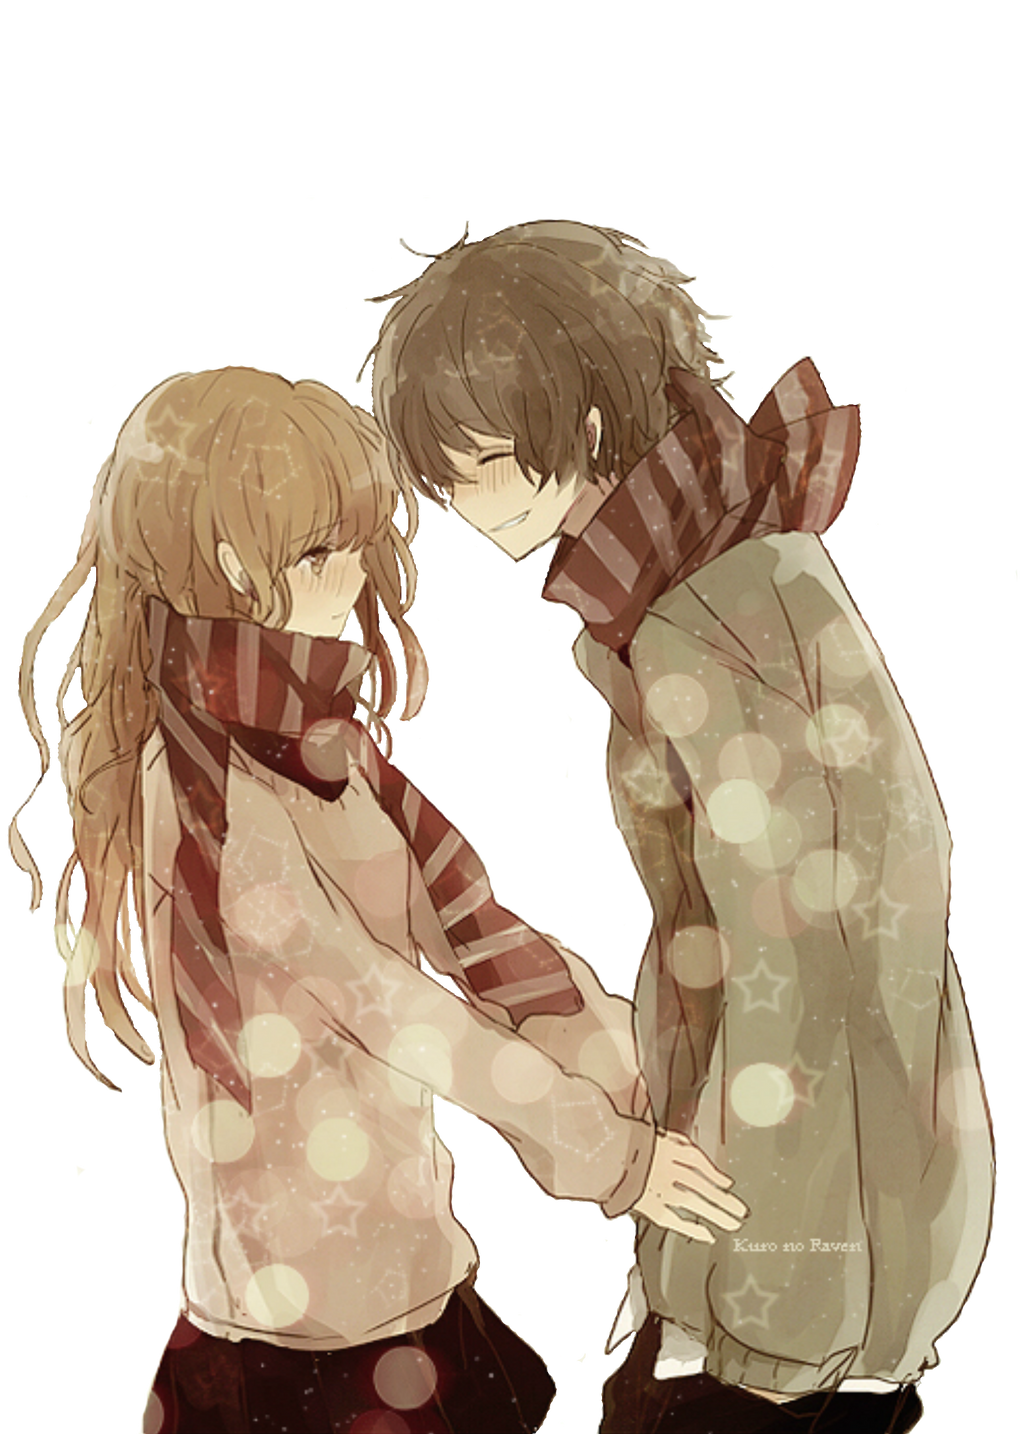 Anime boy and girl by LCkiWi on DeviantArt